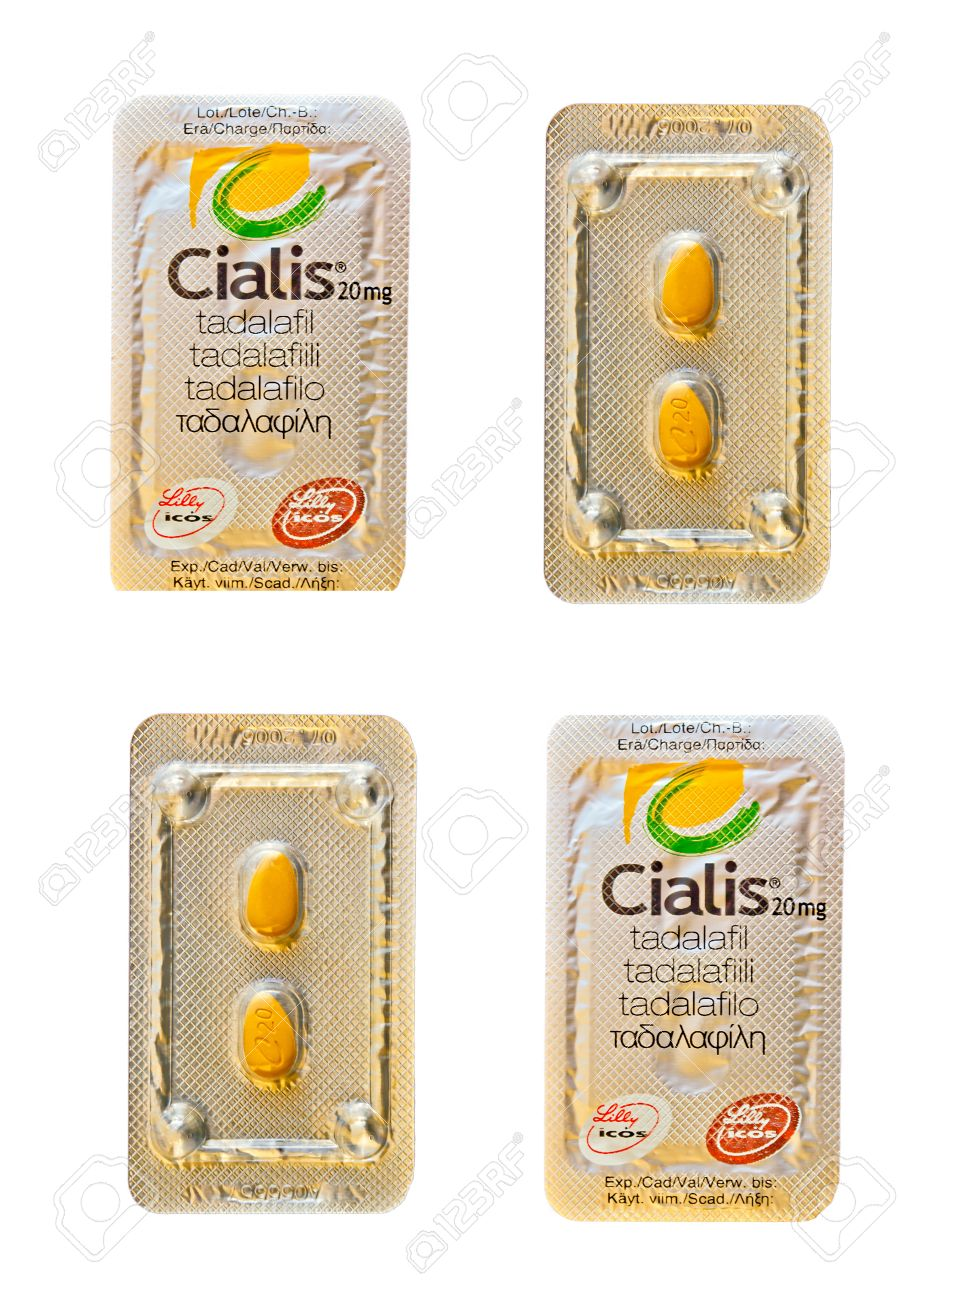 Cialis pills what do they look like viagra competitive inhibitor